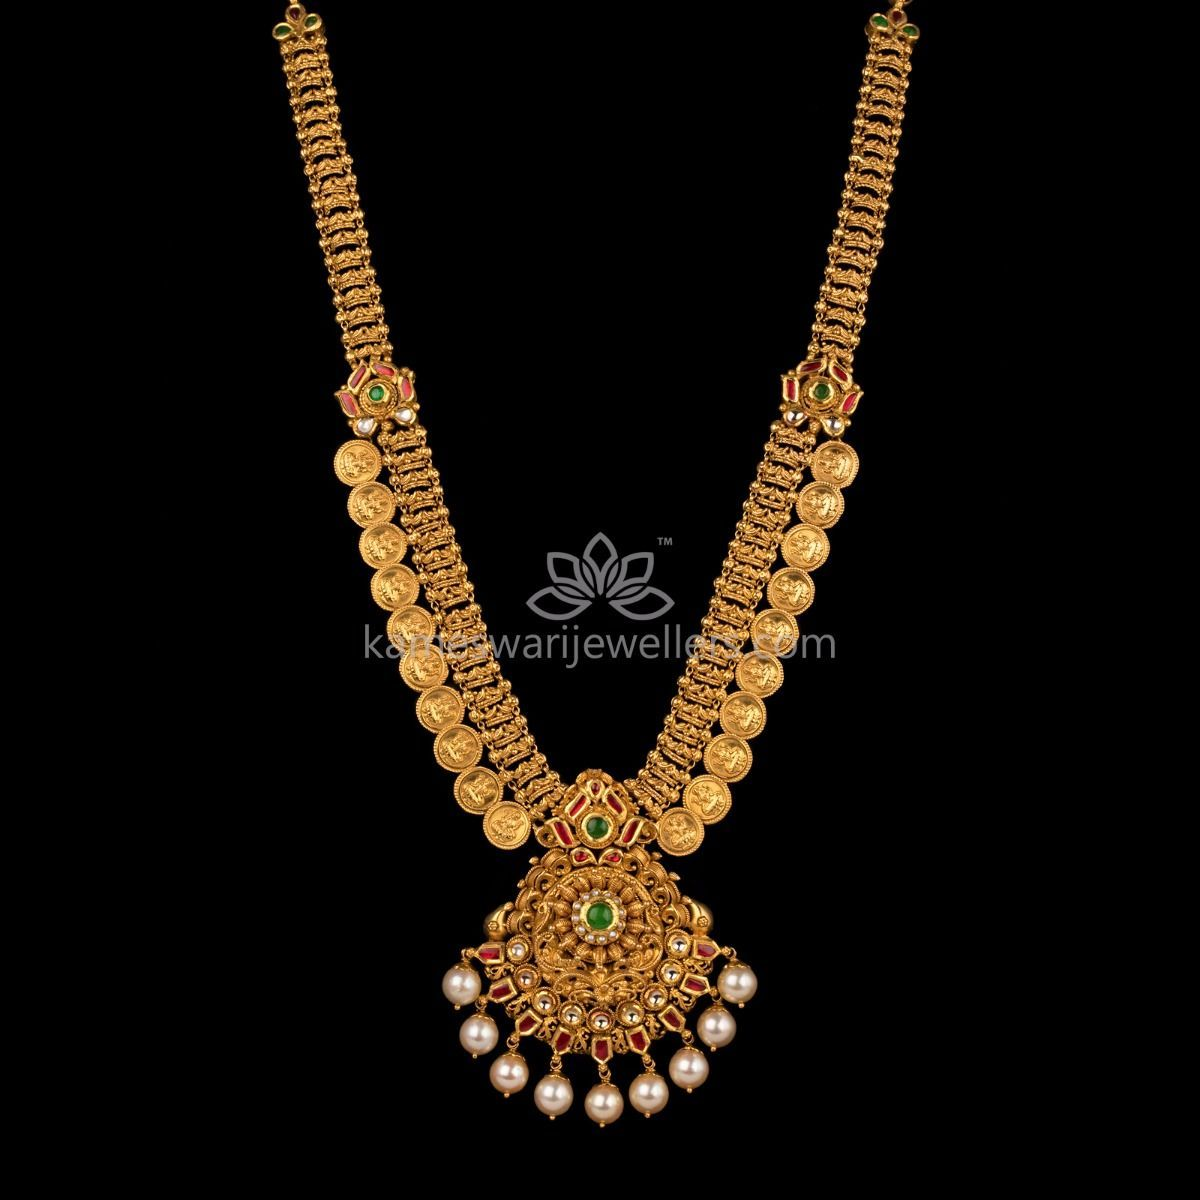 25++ How to ship gold jewelry from india to usa info